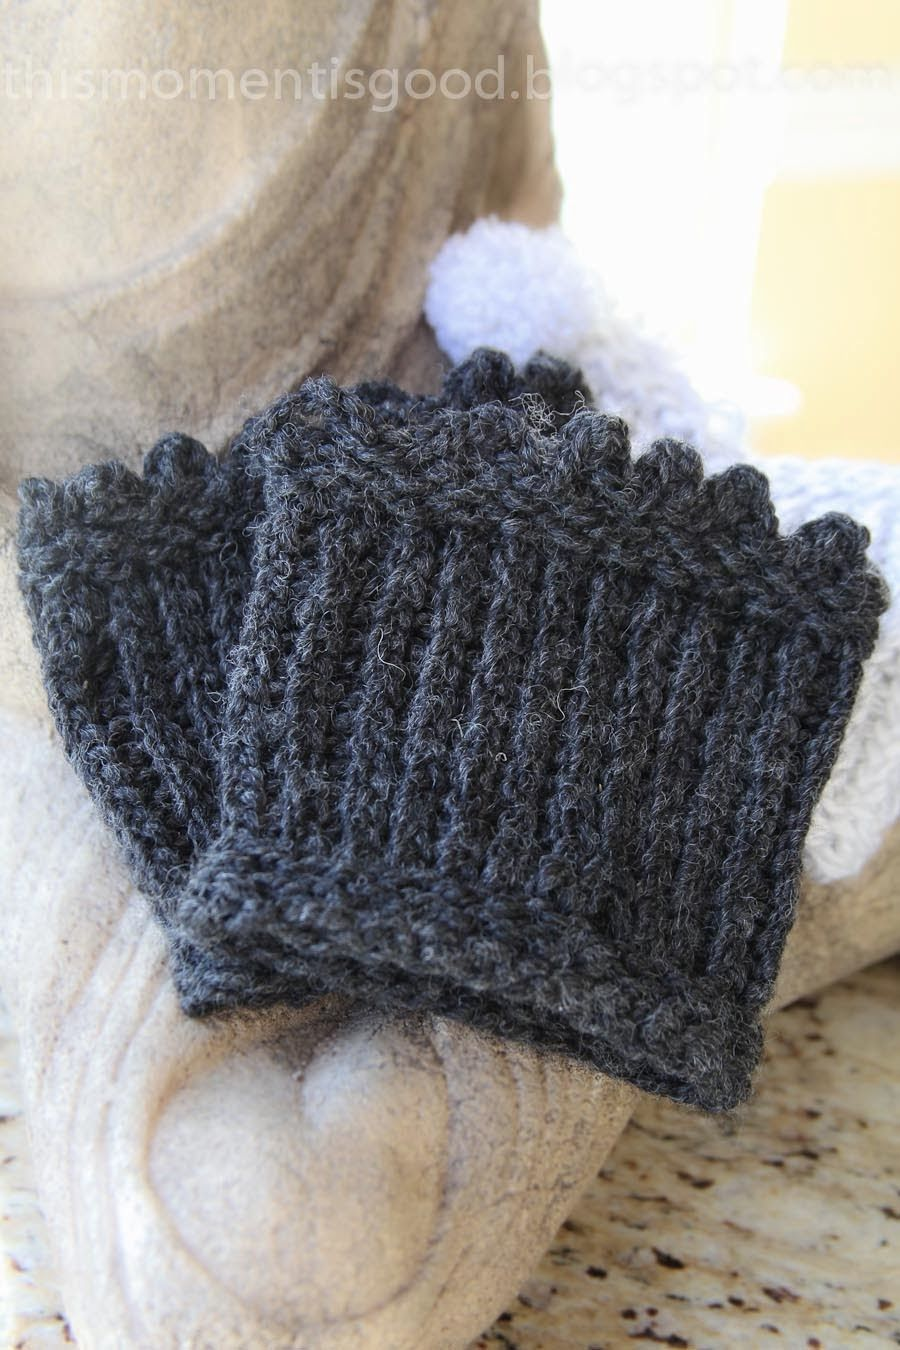 This Moment is Good...: LOOM KNIT PICOT EDGED BOOT TOPPERS/CUFFS ...